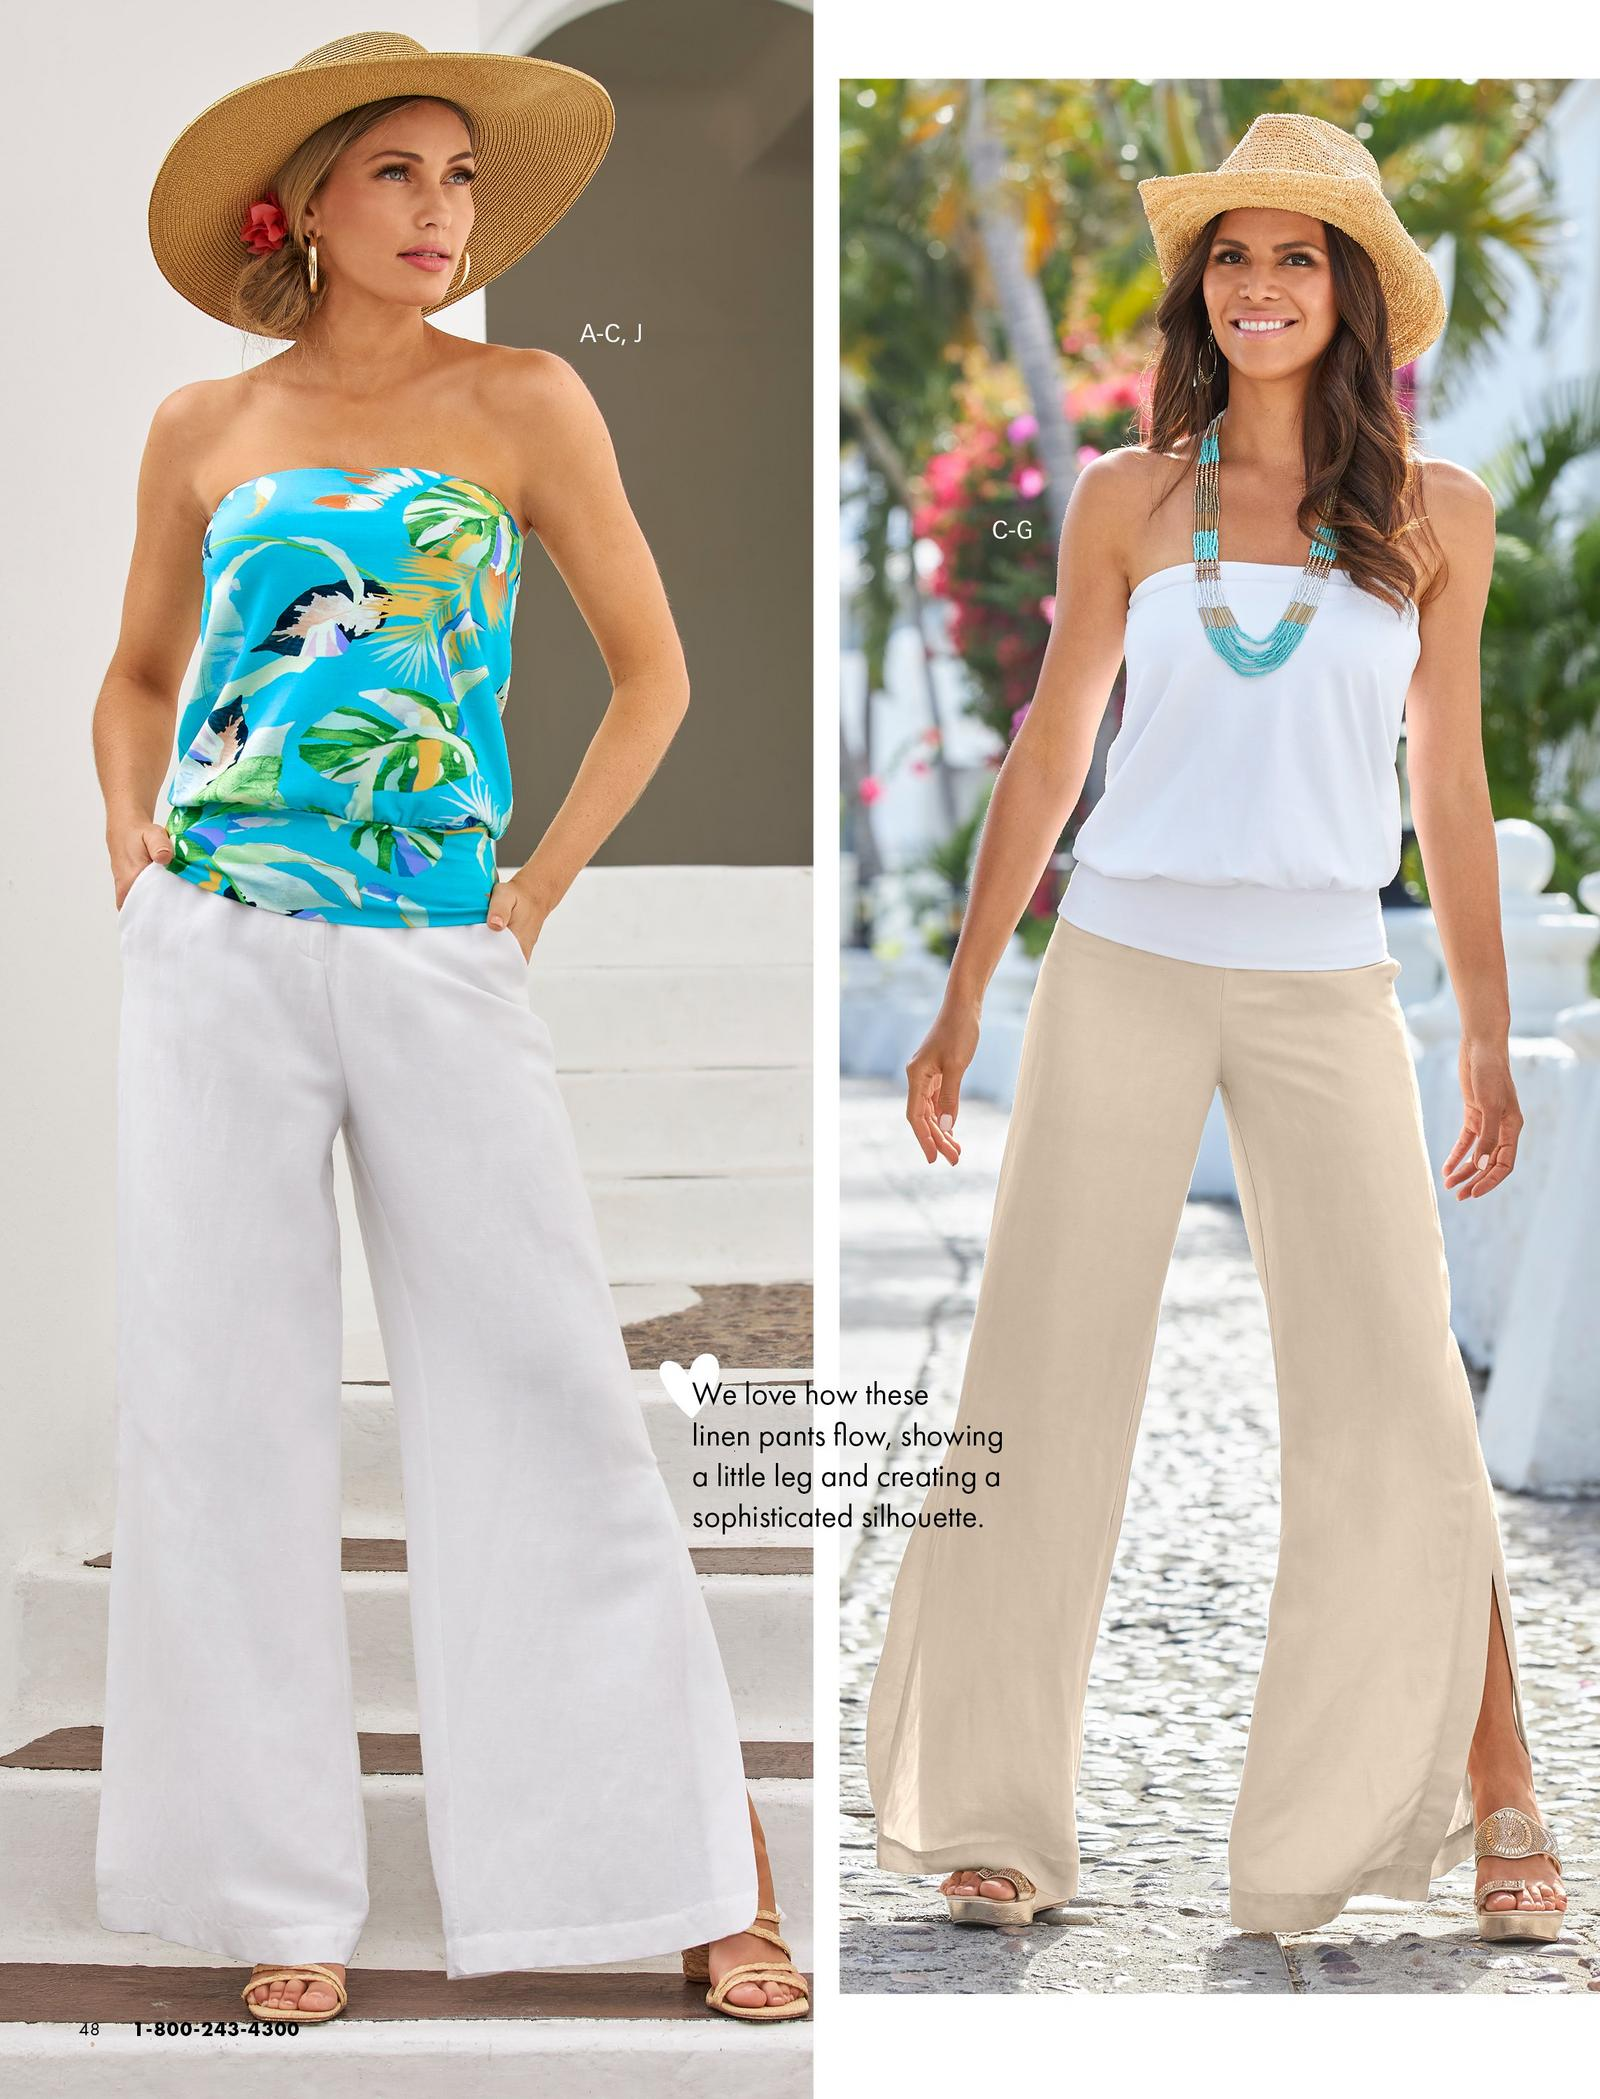 left model wearing a tropical print multicolored blouson tube top, white linen pants, gold hoop earrings, straw hat, and raffia strappy heels. right model wearing a white blouson tube top, straw hat, turquoise beaded necklace, tan linen pants, and gold wedges.